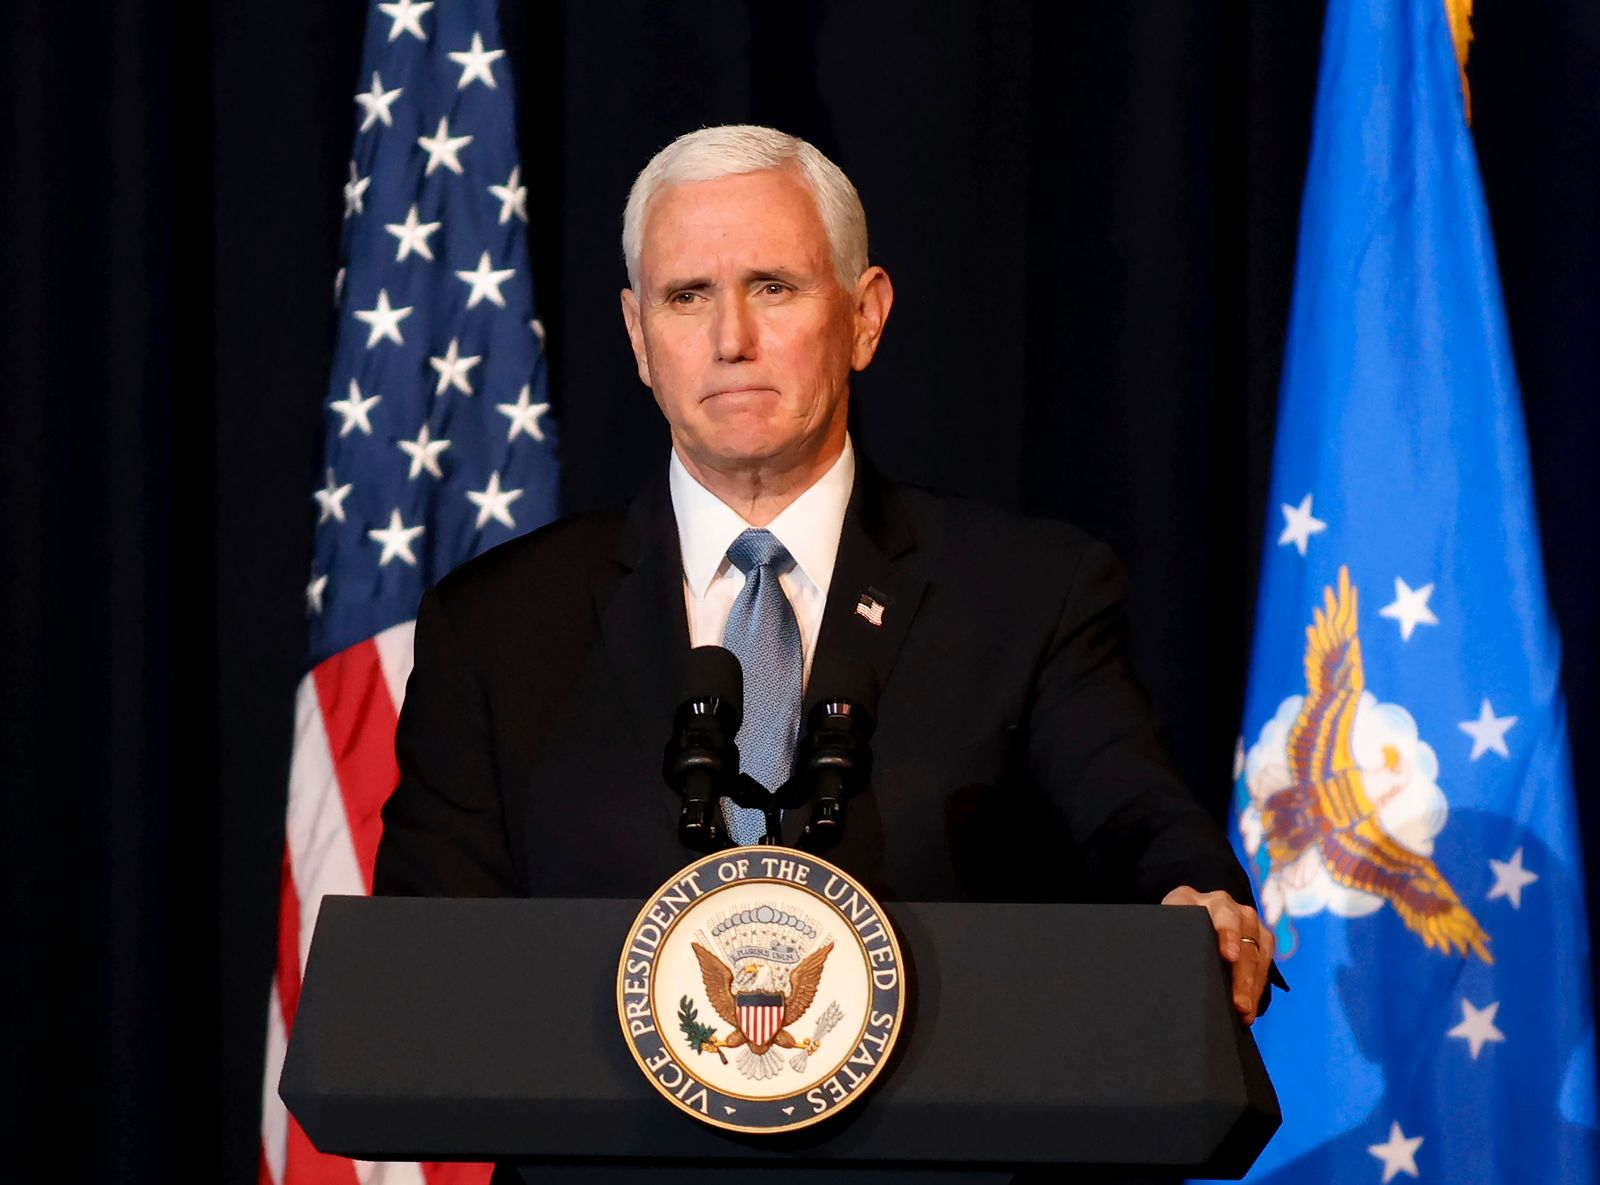 Books-Mike Pence